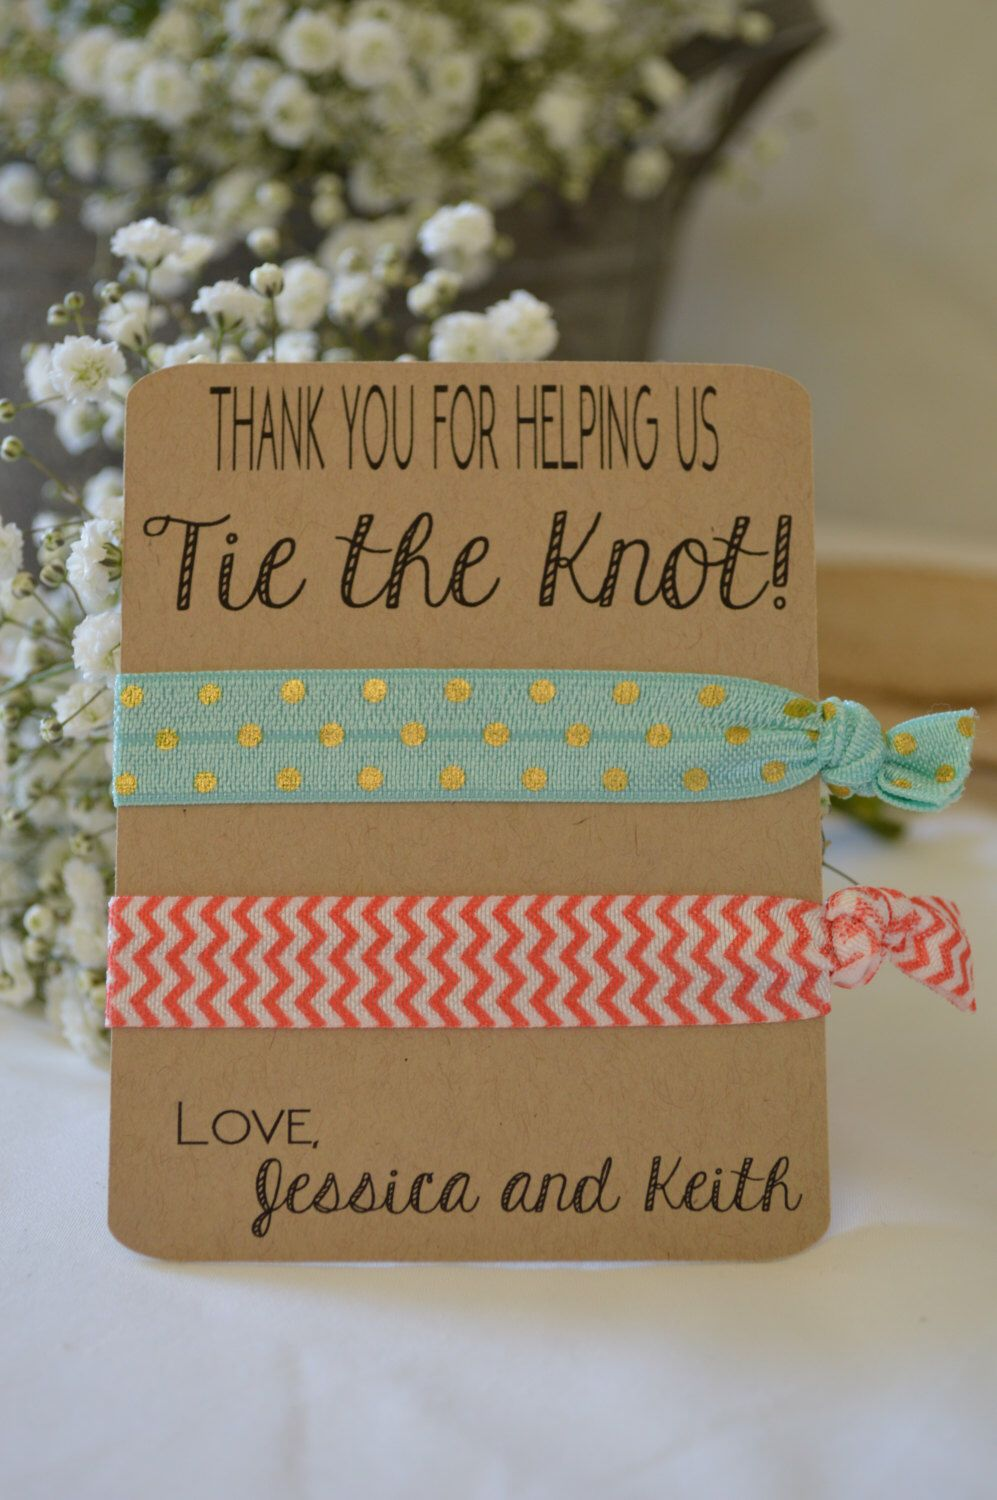 tie the knot wedding invitations etsy%0A Thank You for Helping us Tie the Knot Favor  Set of   by HeathersPartySpot  on